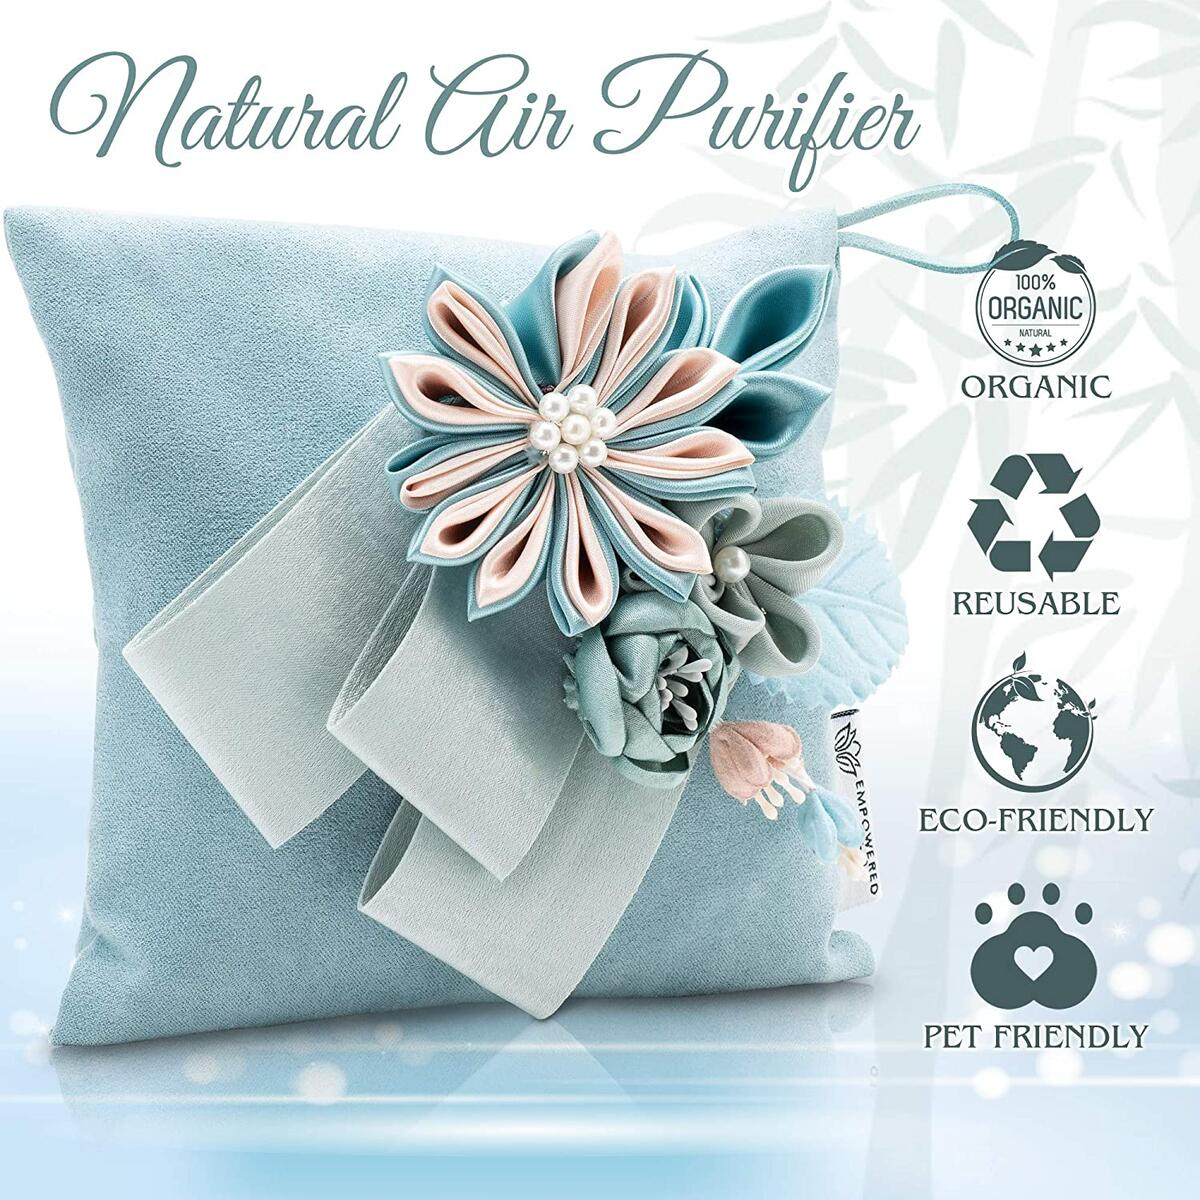 Bamboo Charcoal Air Purifying Bags - Odor Absorbers for Home - Activated Bamboo Charcoal Pouches with All-Natural Pet Friendly Materials - Set of 2 - 250g of Activated Charcoal in Each Bag